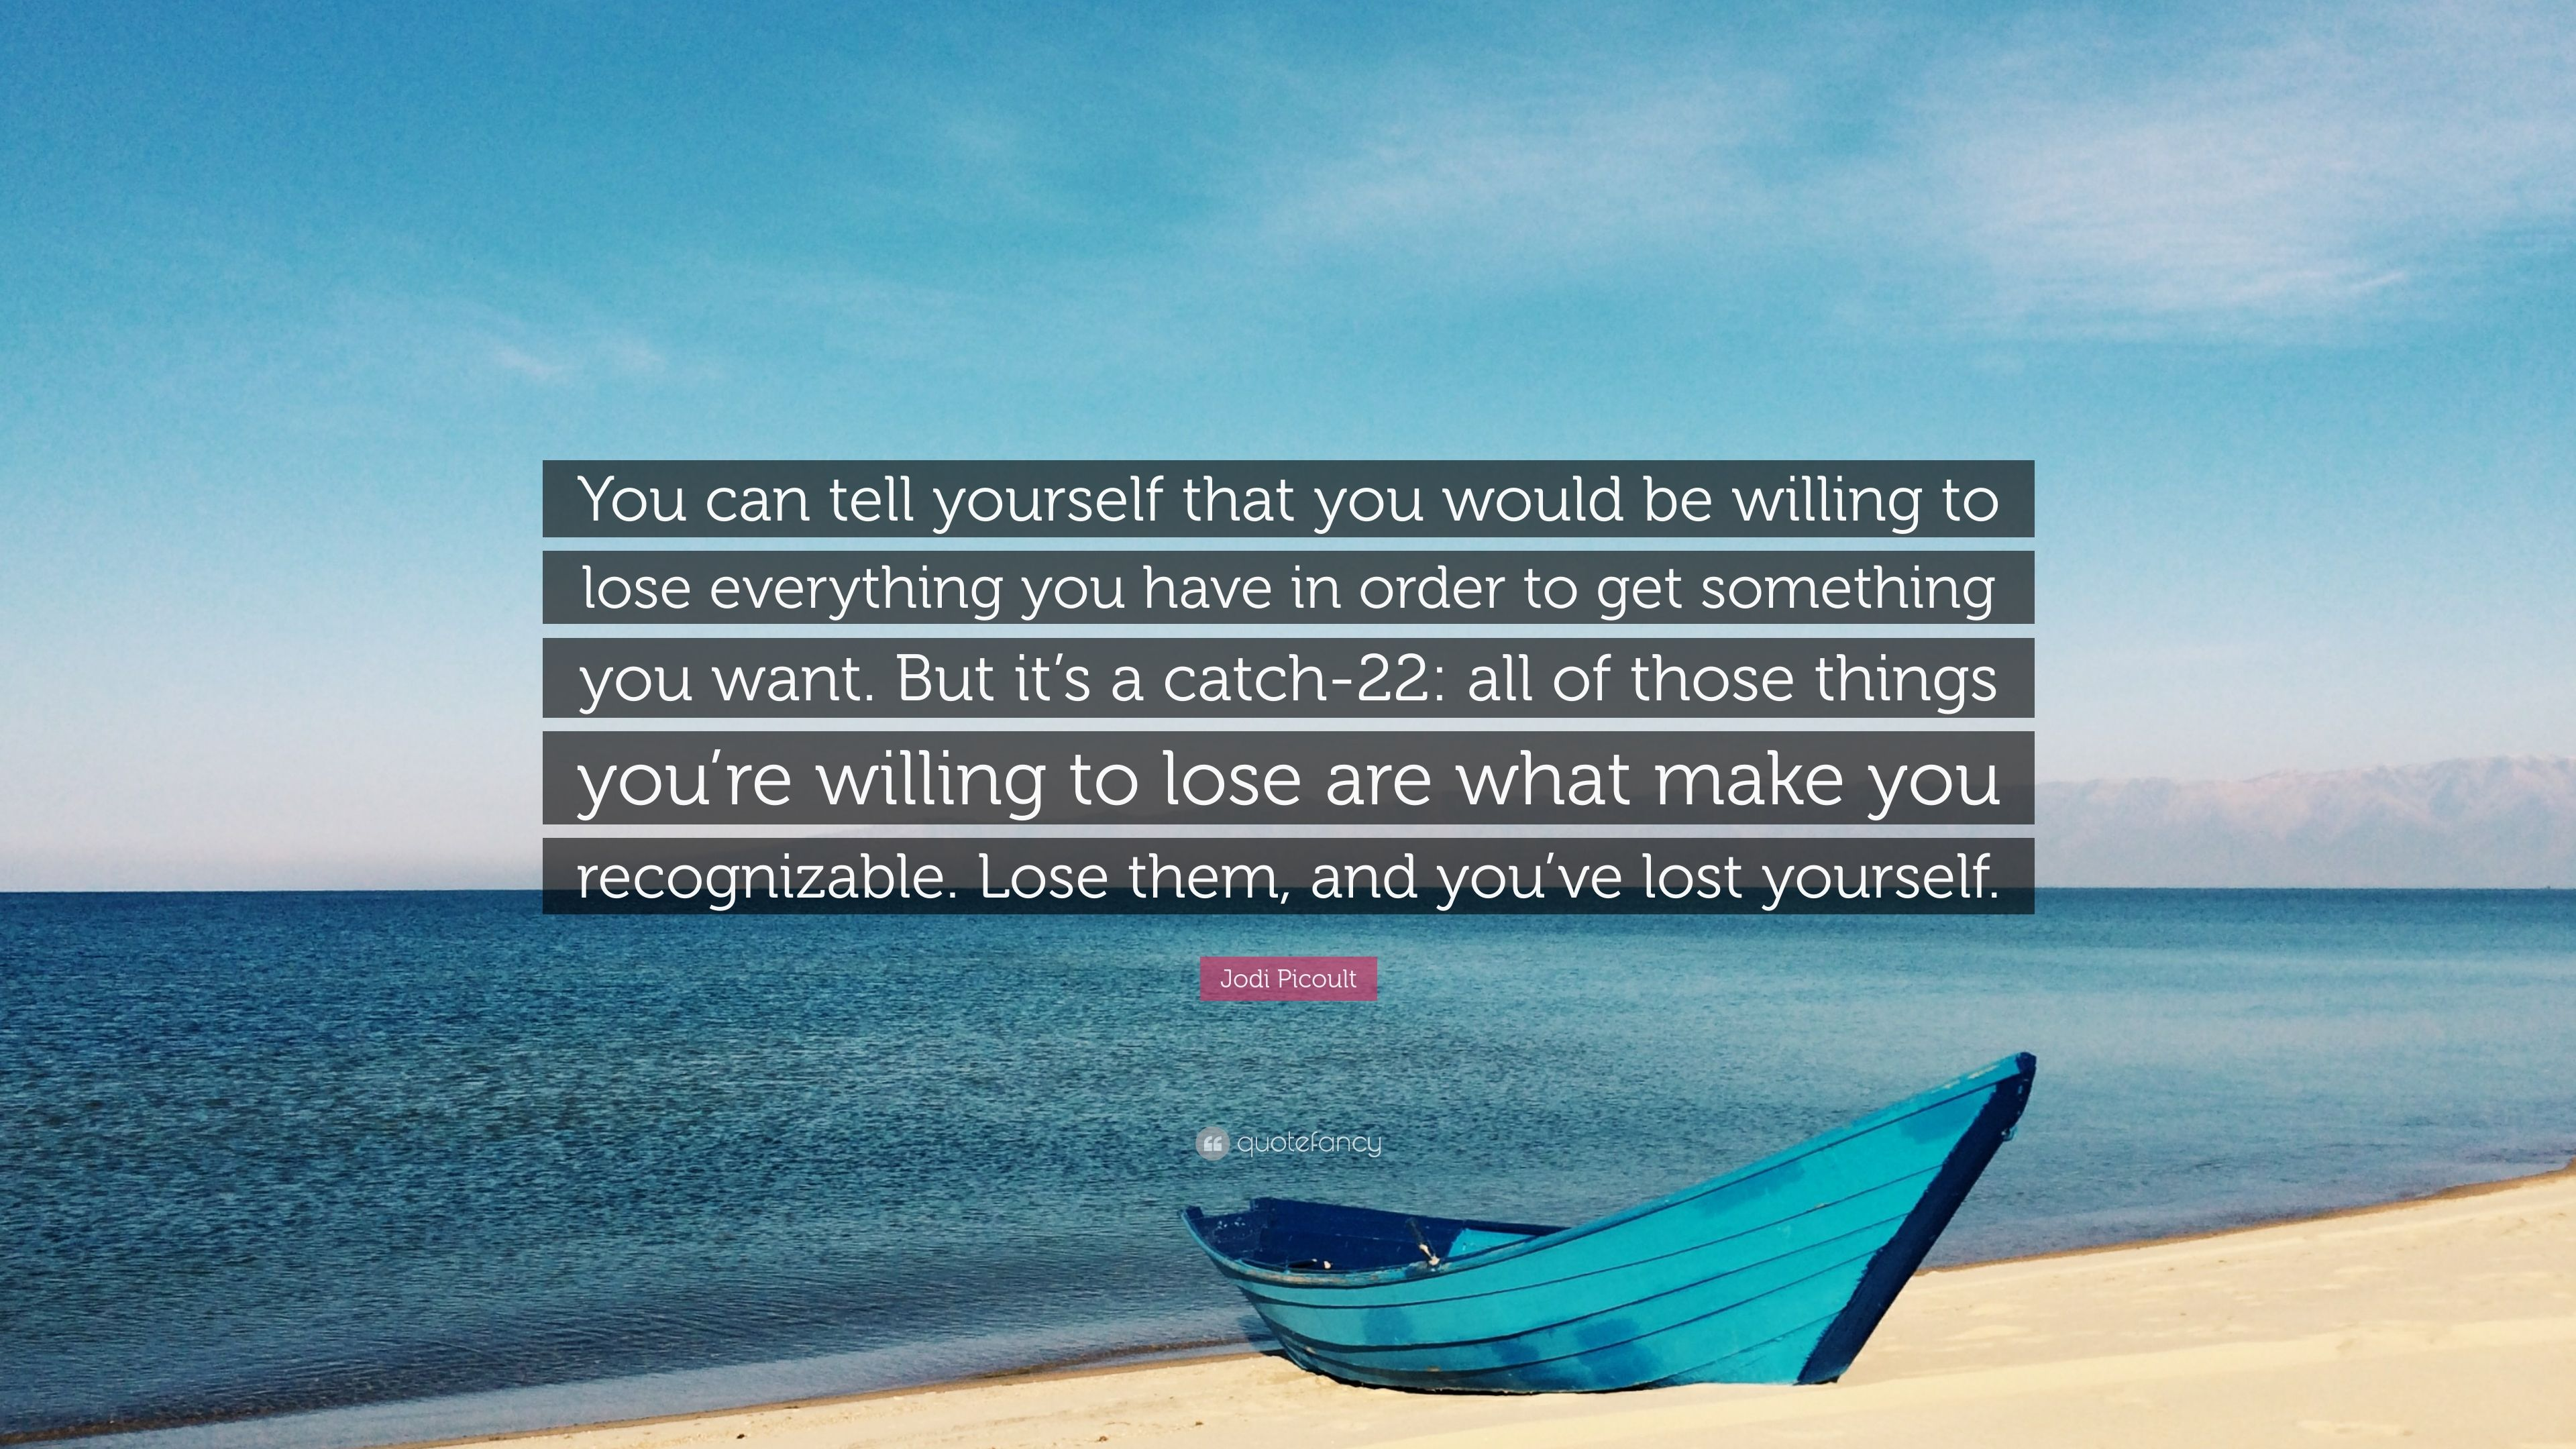 What to do if you lost yourself, you do not know what is happening and what to do